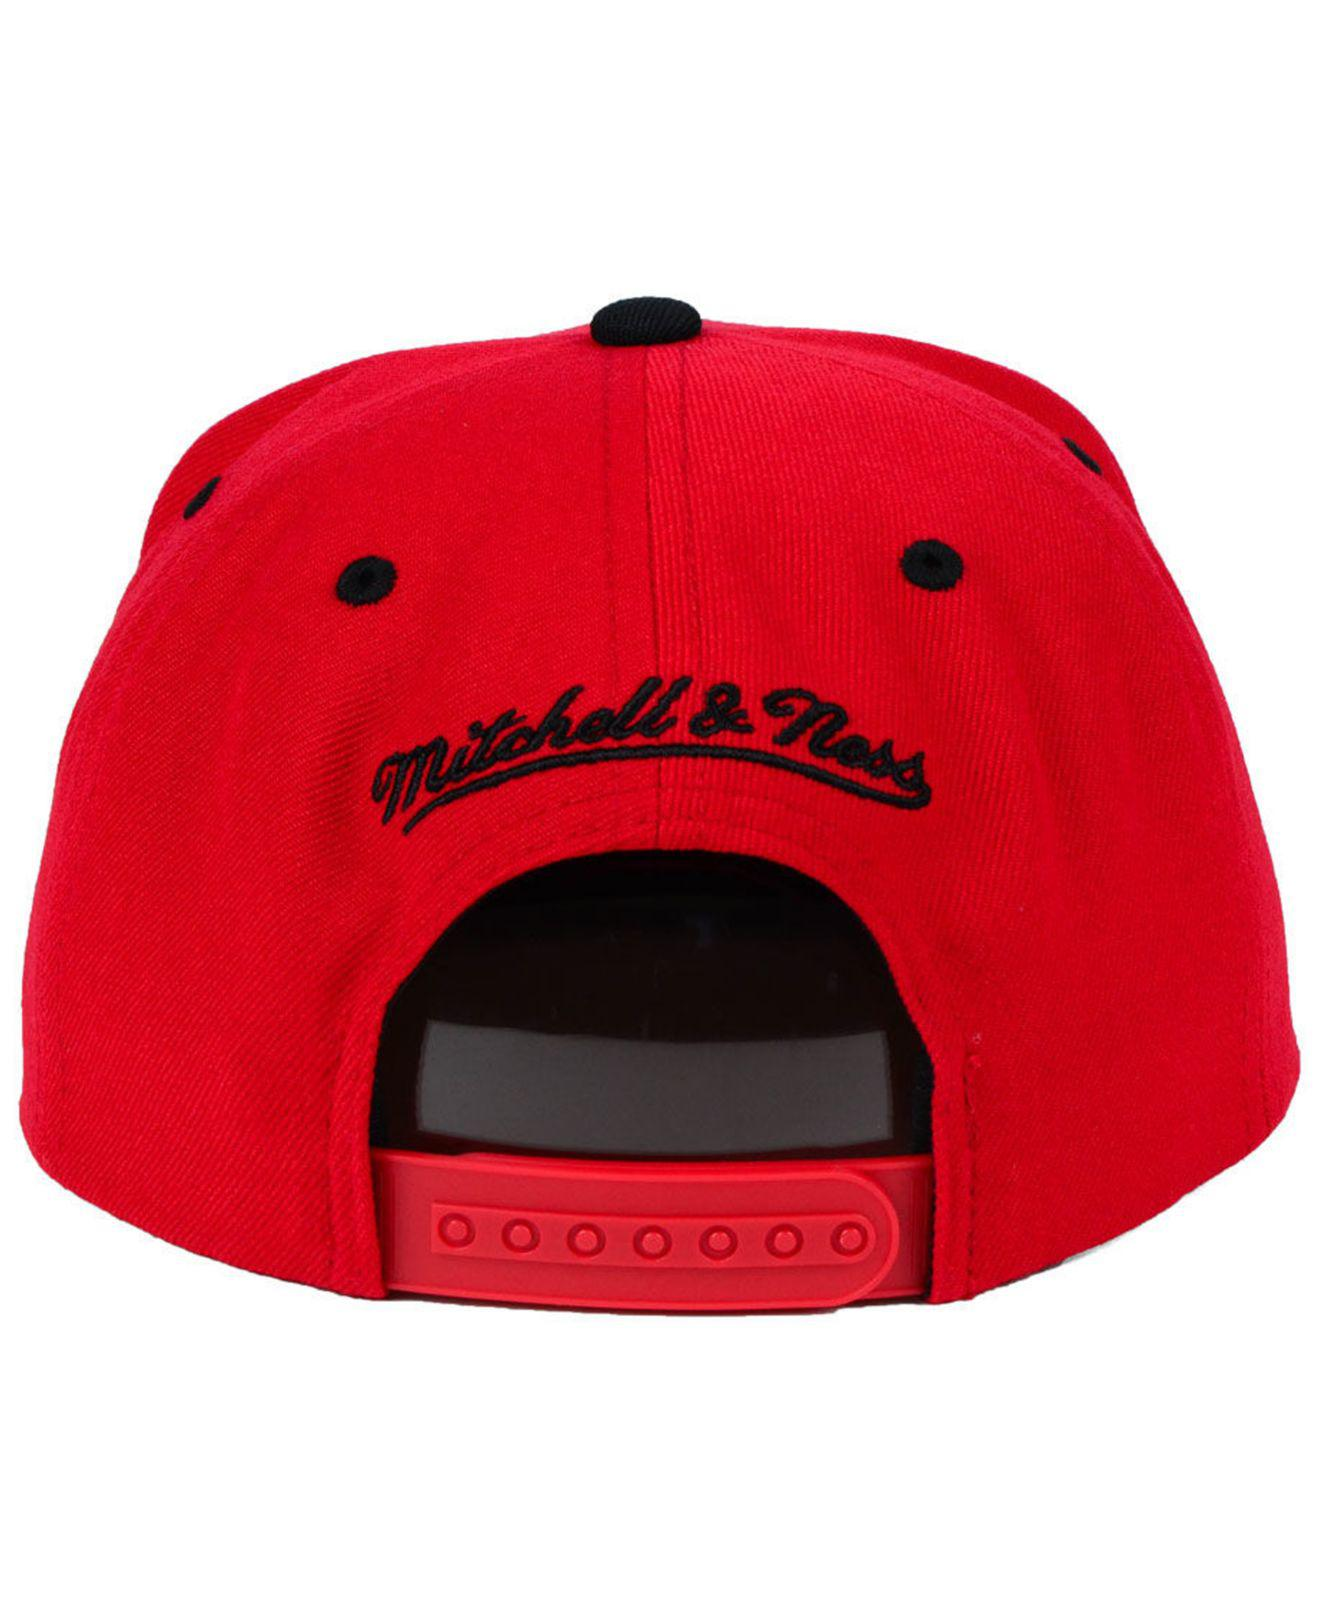 ed9b21a0ad4 Mitchell   Ness - Red Chicago Bulls Black   Gold Metallic Snapback Cap for  Men -. View fullscreen